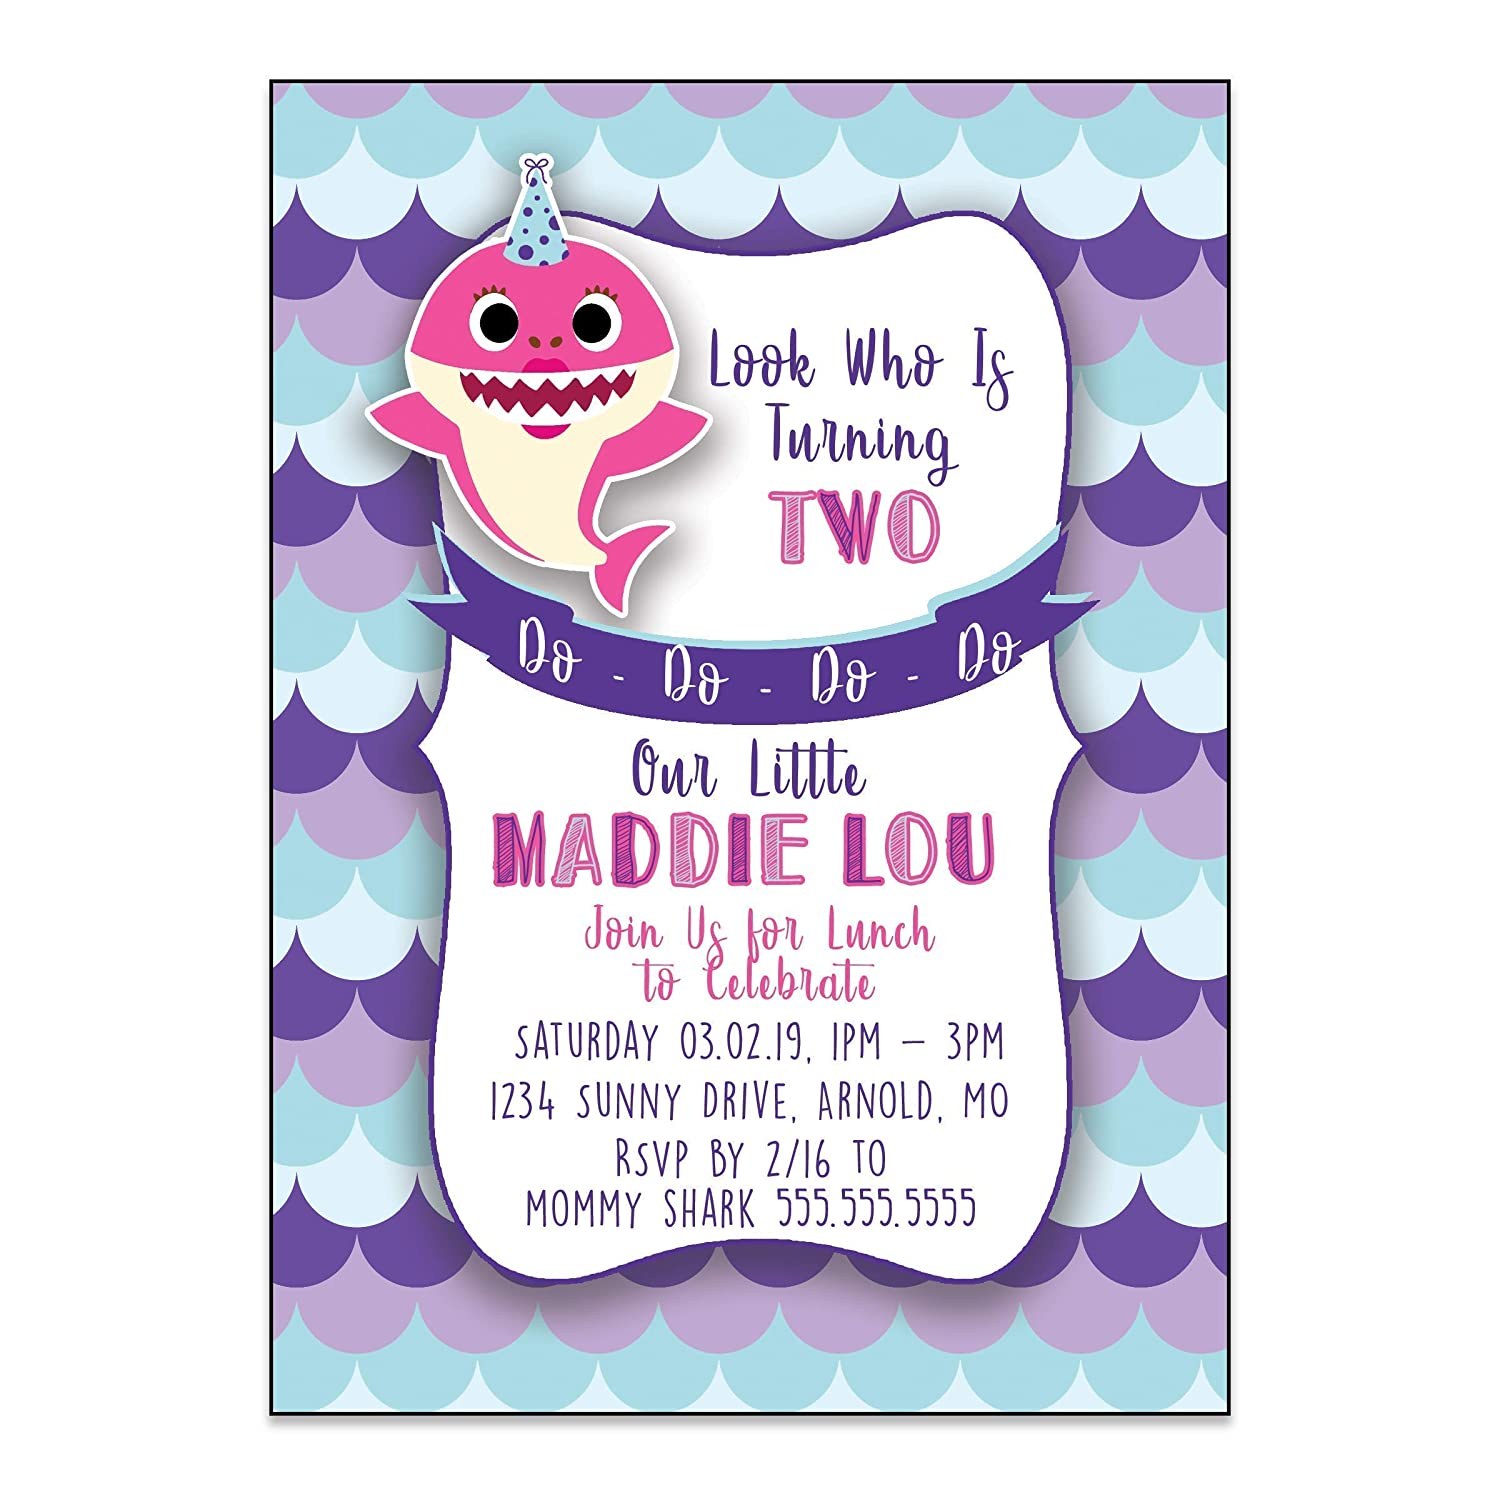 Baby Shark Inspired Birthday Party Invitation 5 Inches By 7 Inches Envelopes Included With Printed Option Printed Or Digital Diy Party Supplies